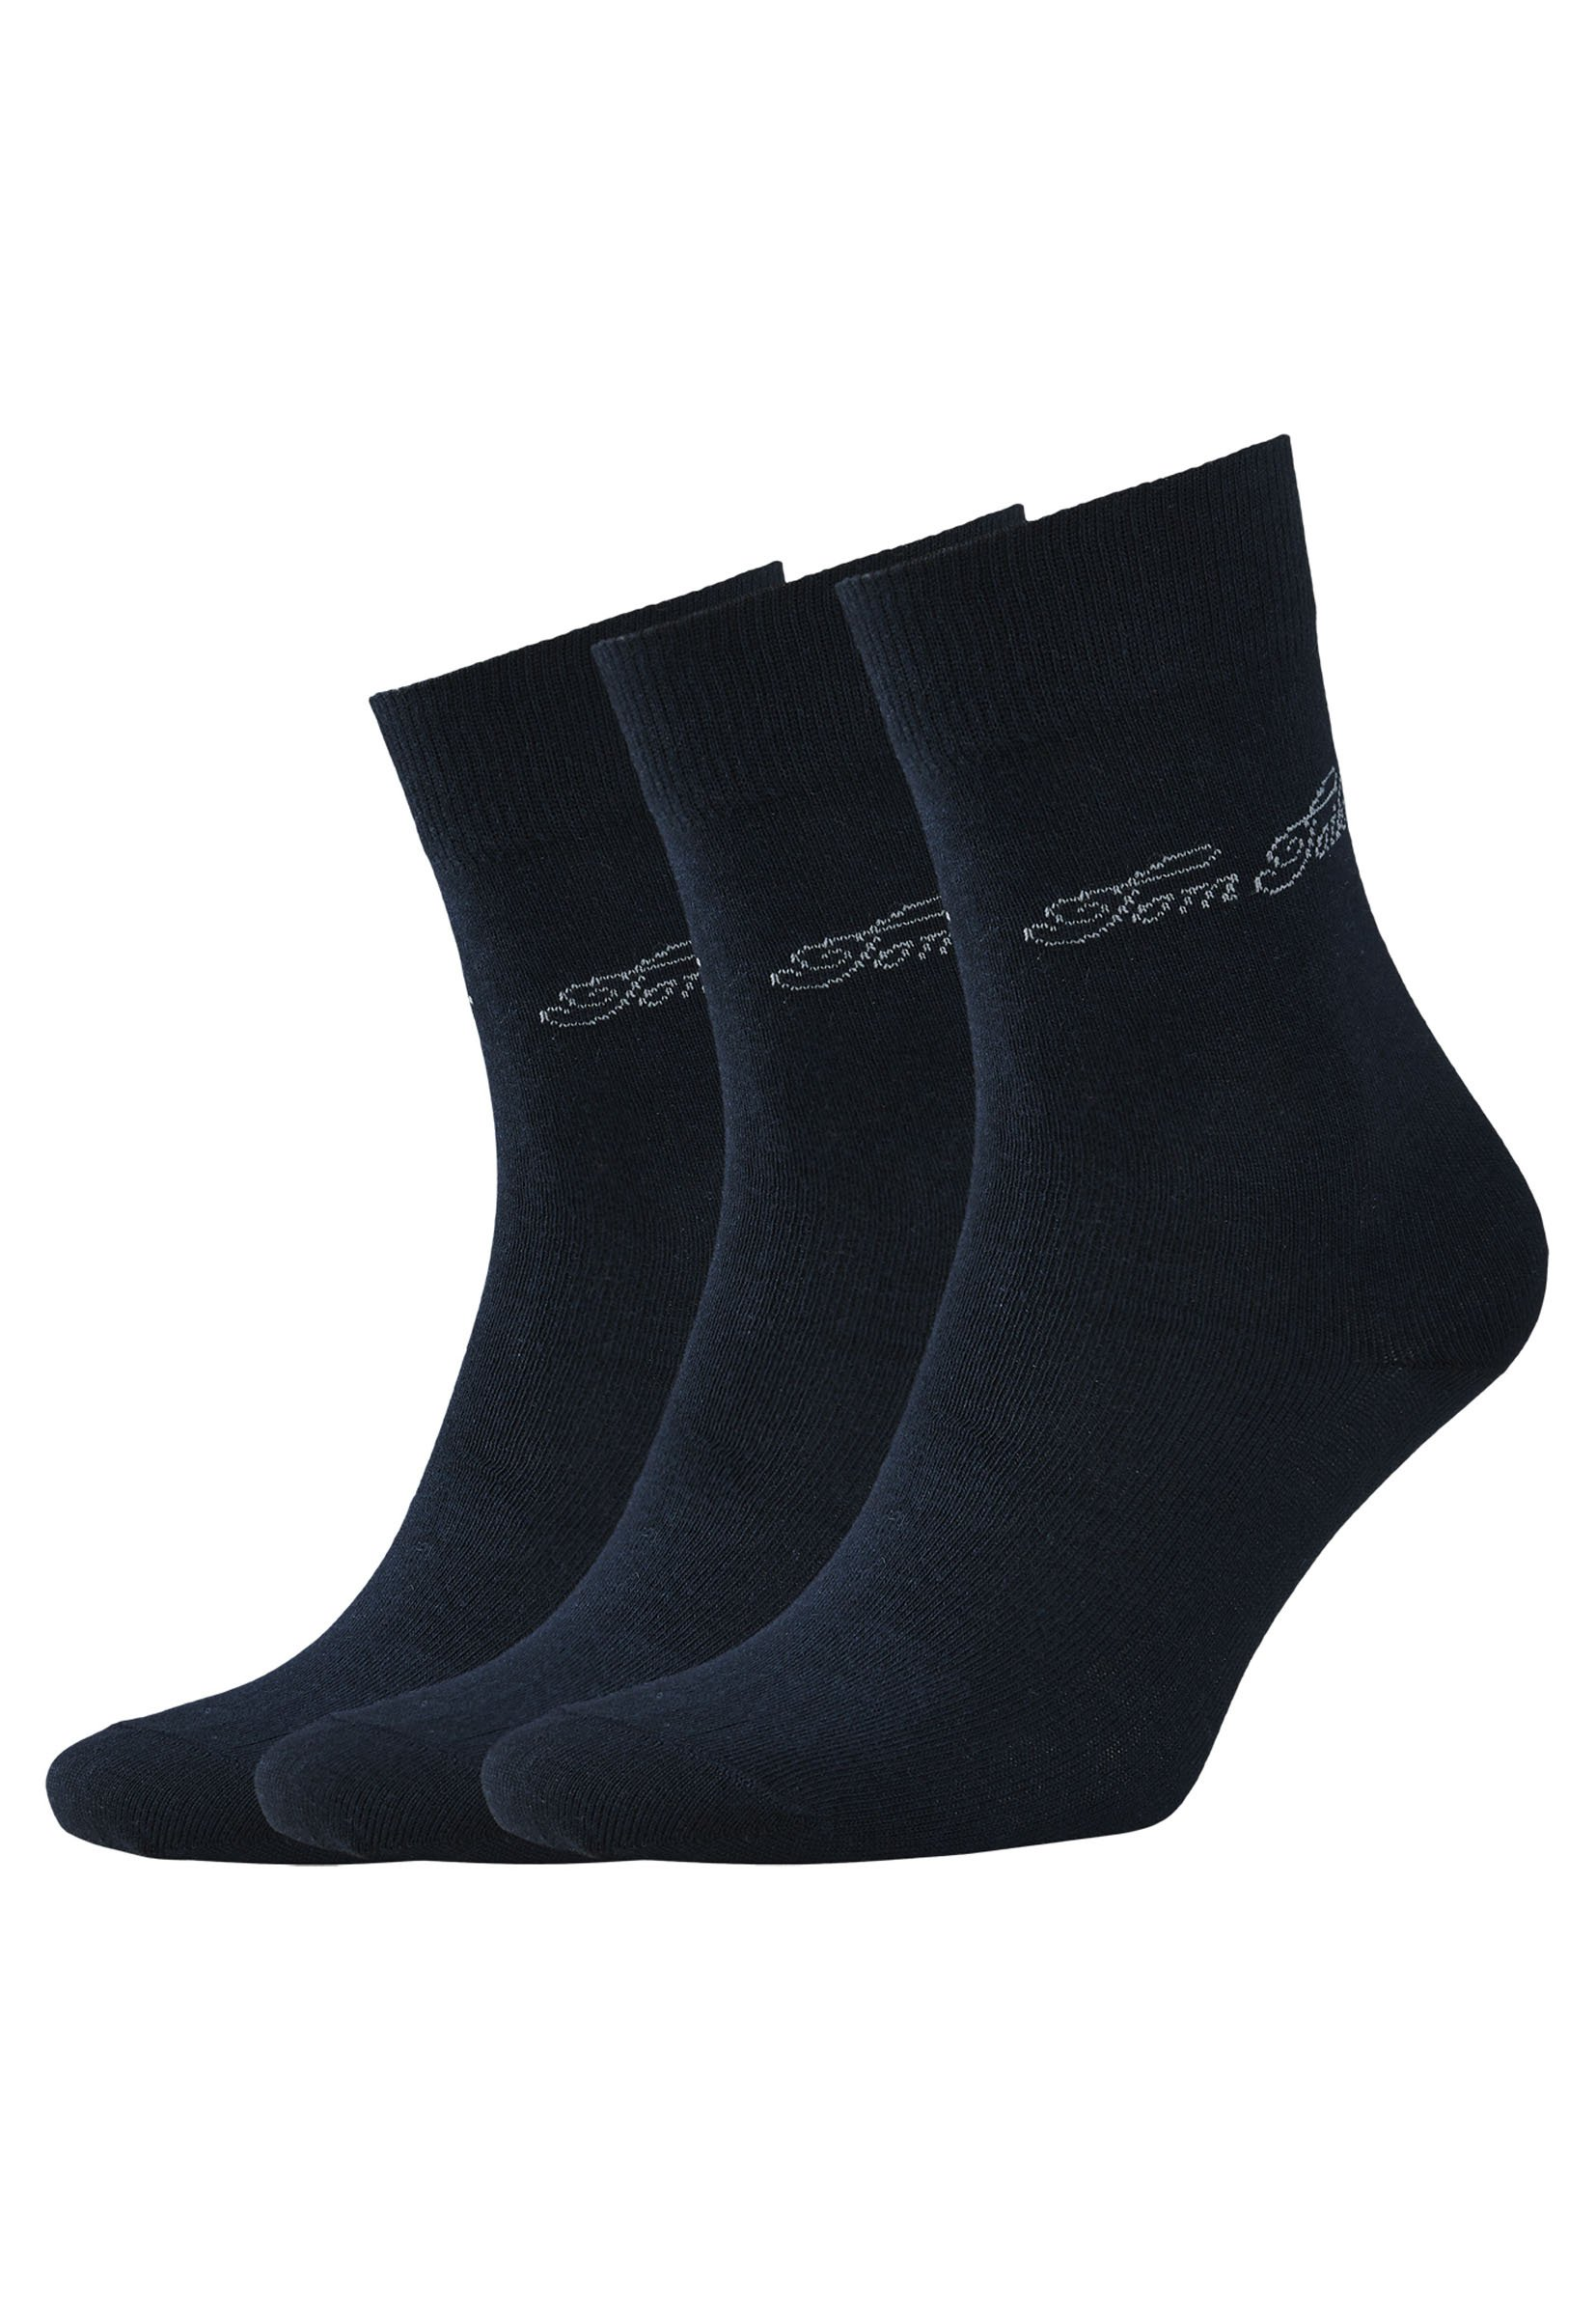 Femme PACK OF 3 - Chaussettes